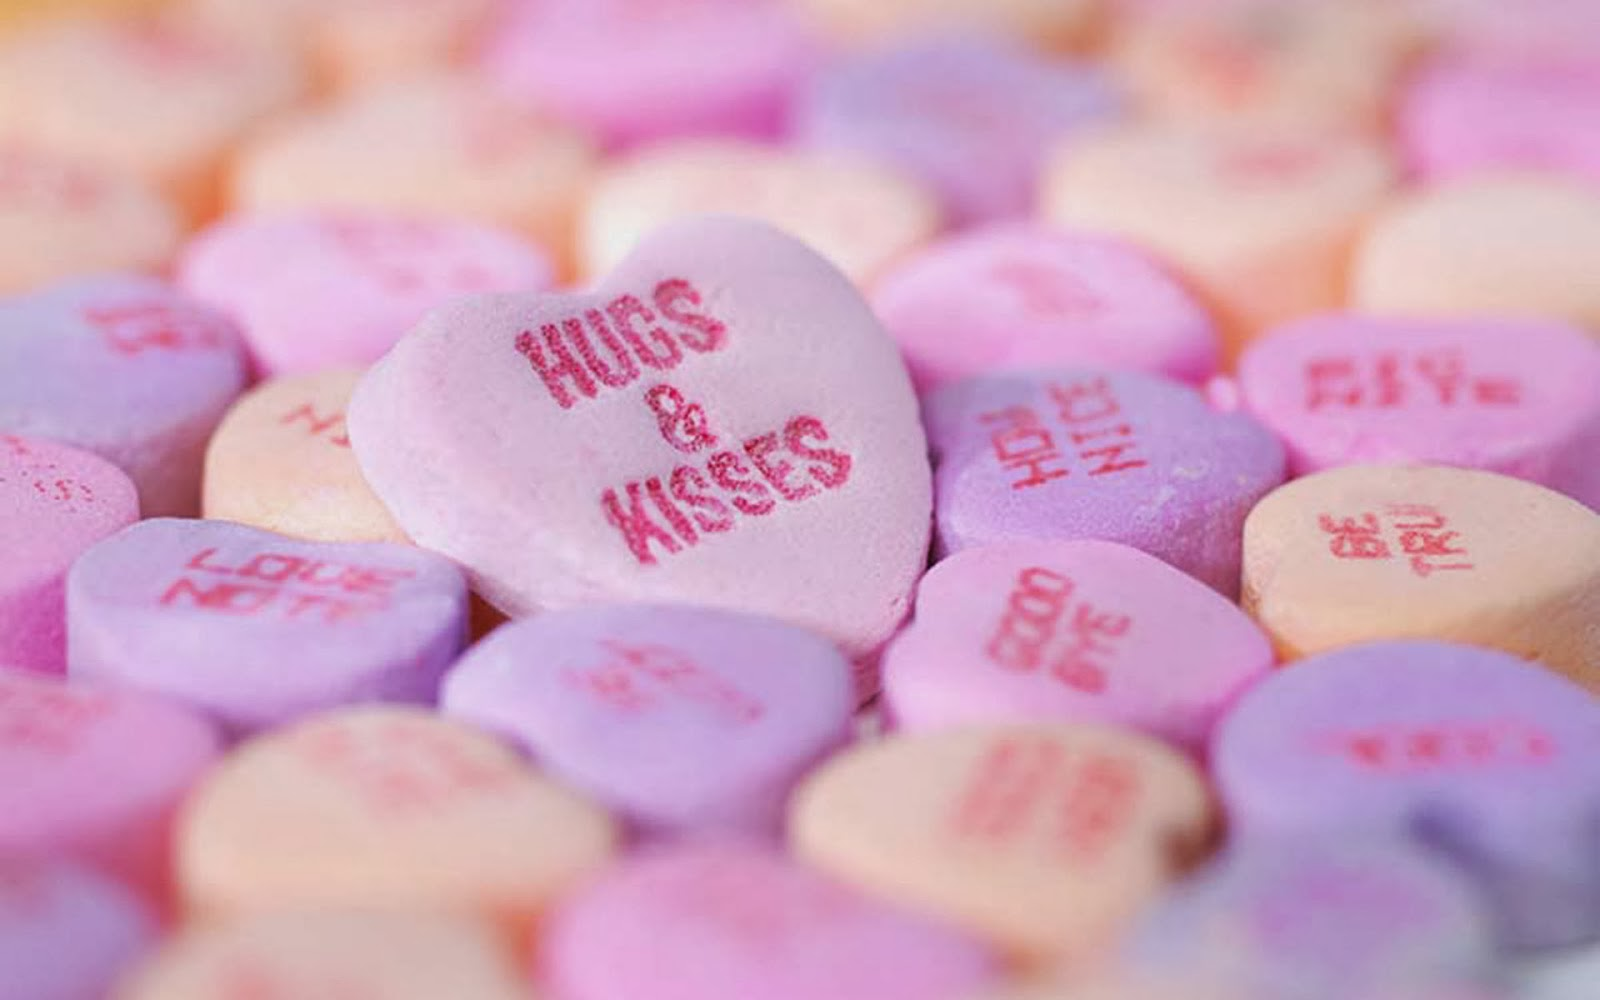 happy valentine hug day and kisses wallpapers 2014 download